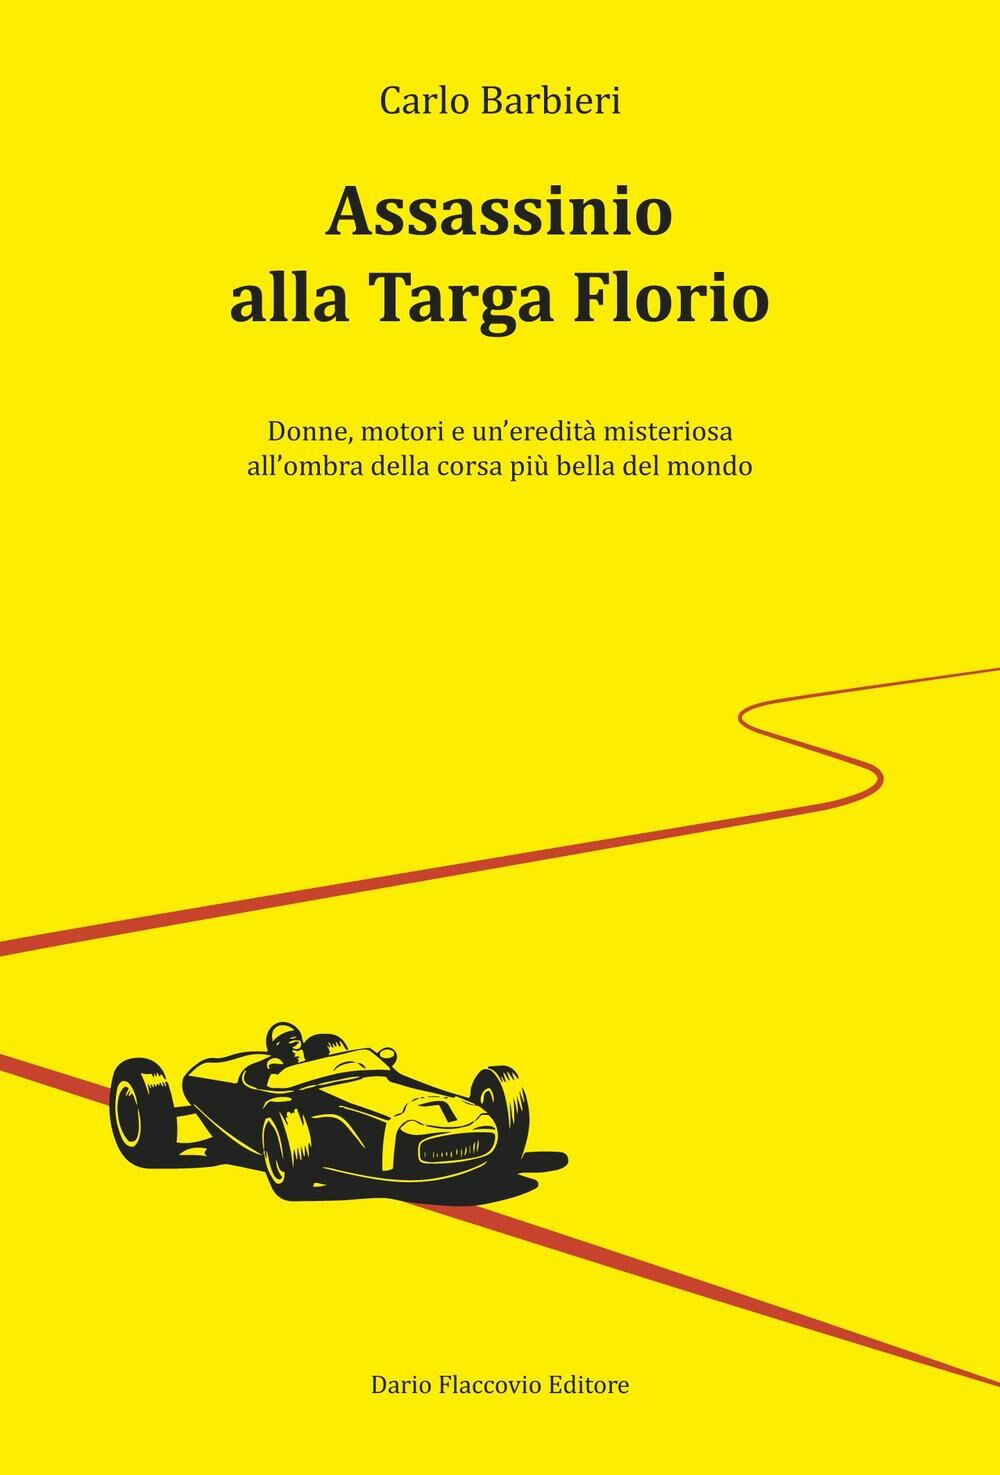 Assassinio alla Targa Florio